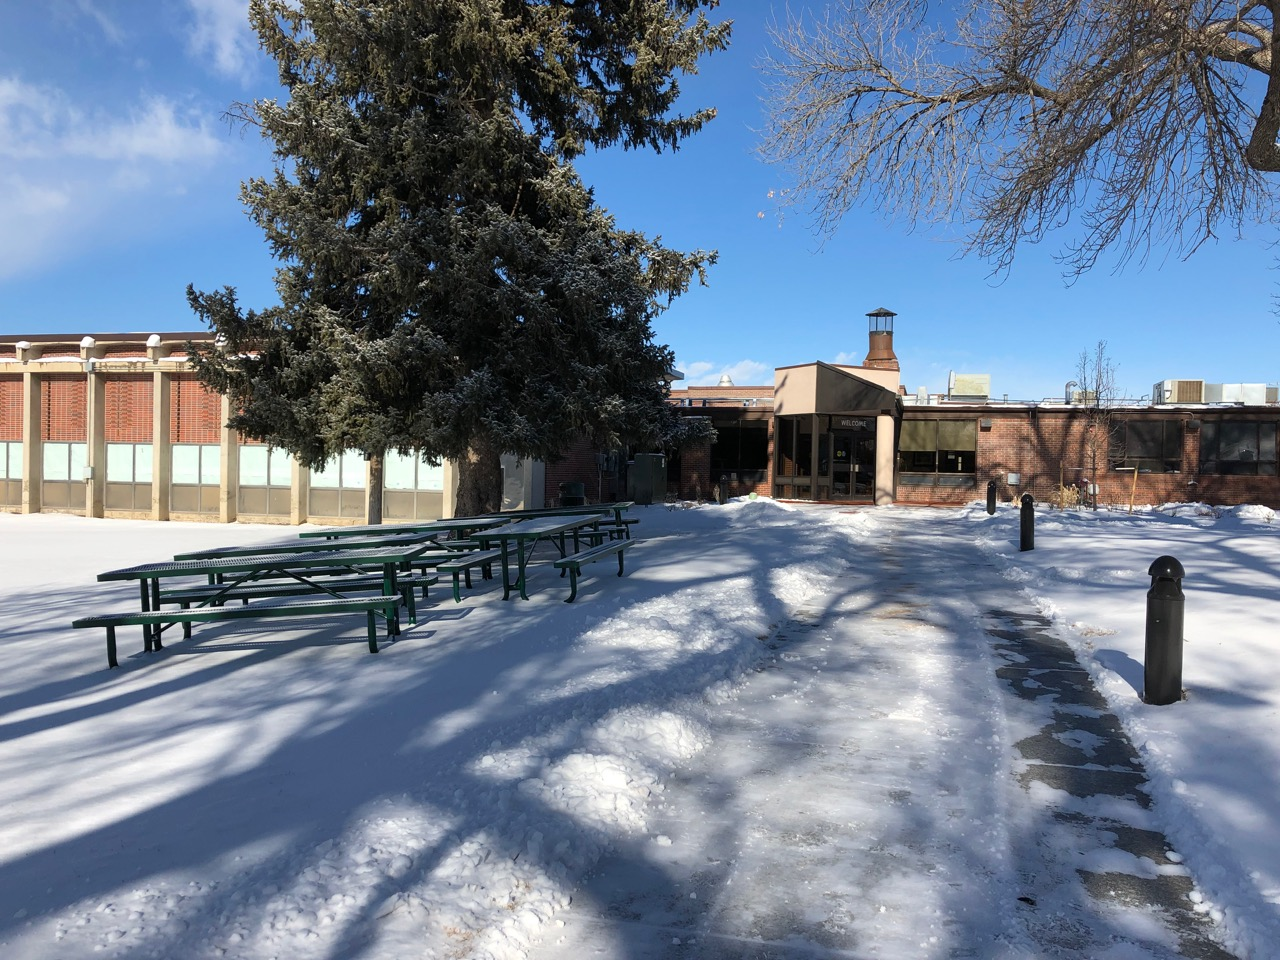 A deep snow covers the grounds of the Colorado Center for the Blind